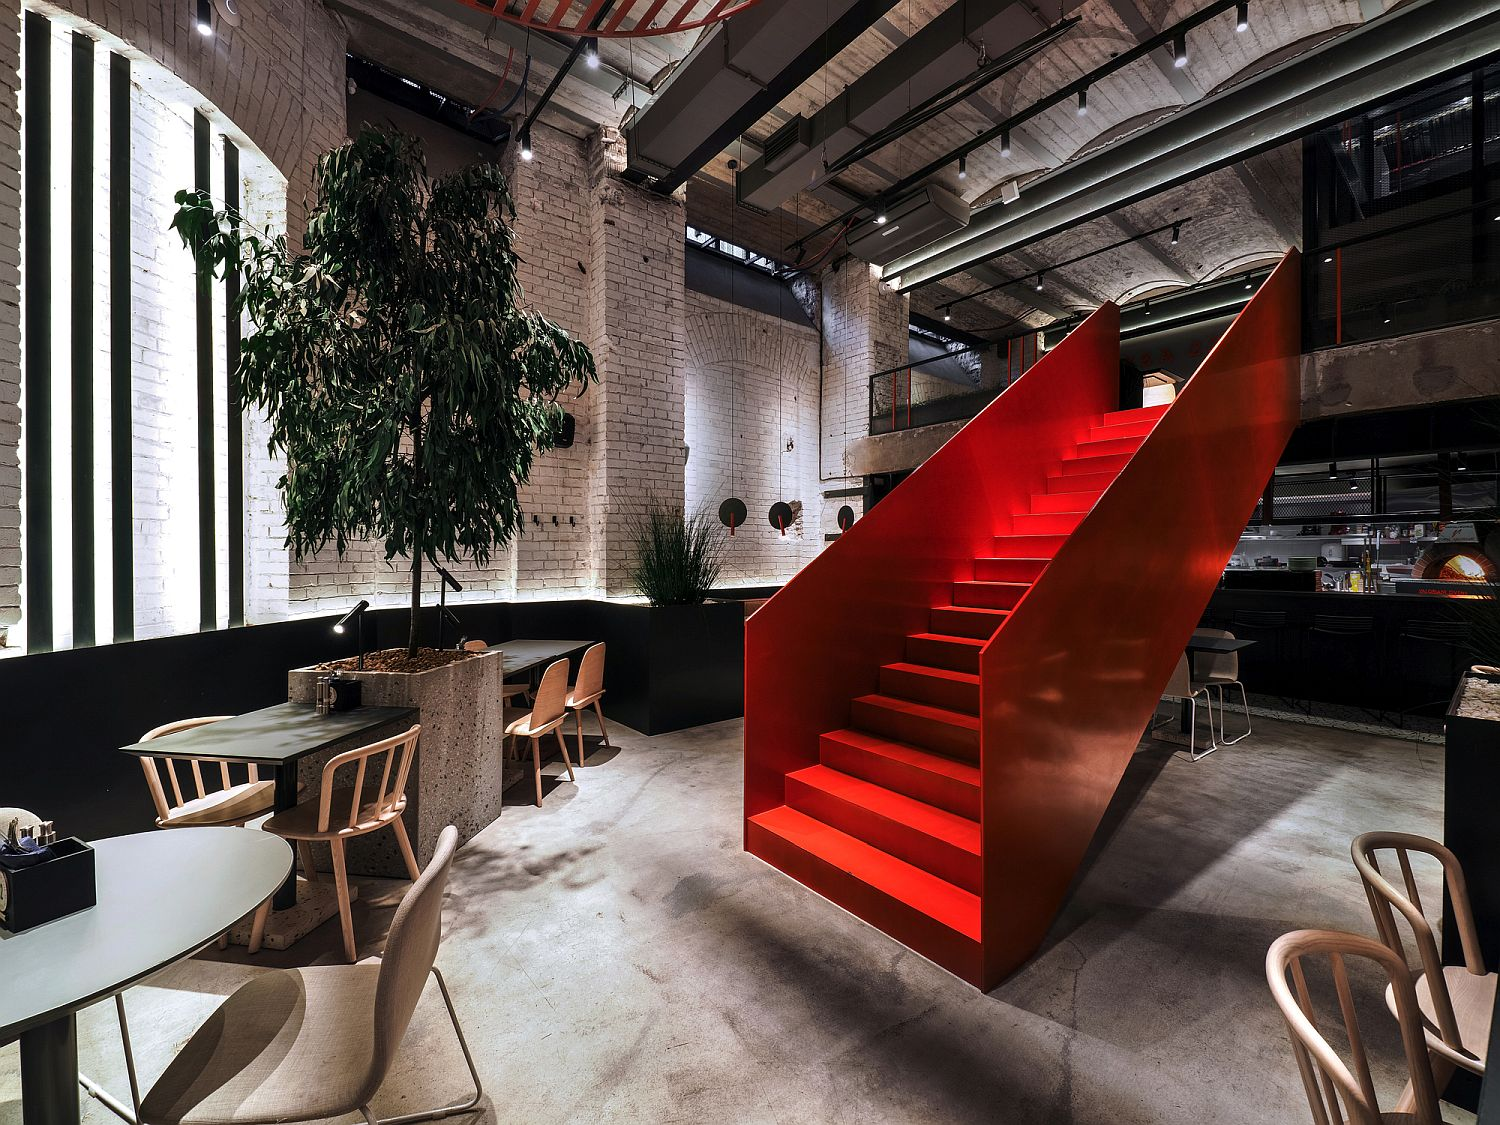 PIZZA 22: Scintillating Red, Stunning Geometry and Underground Minimalism